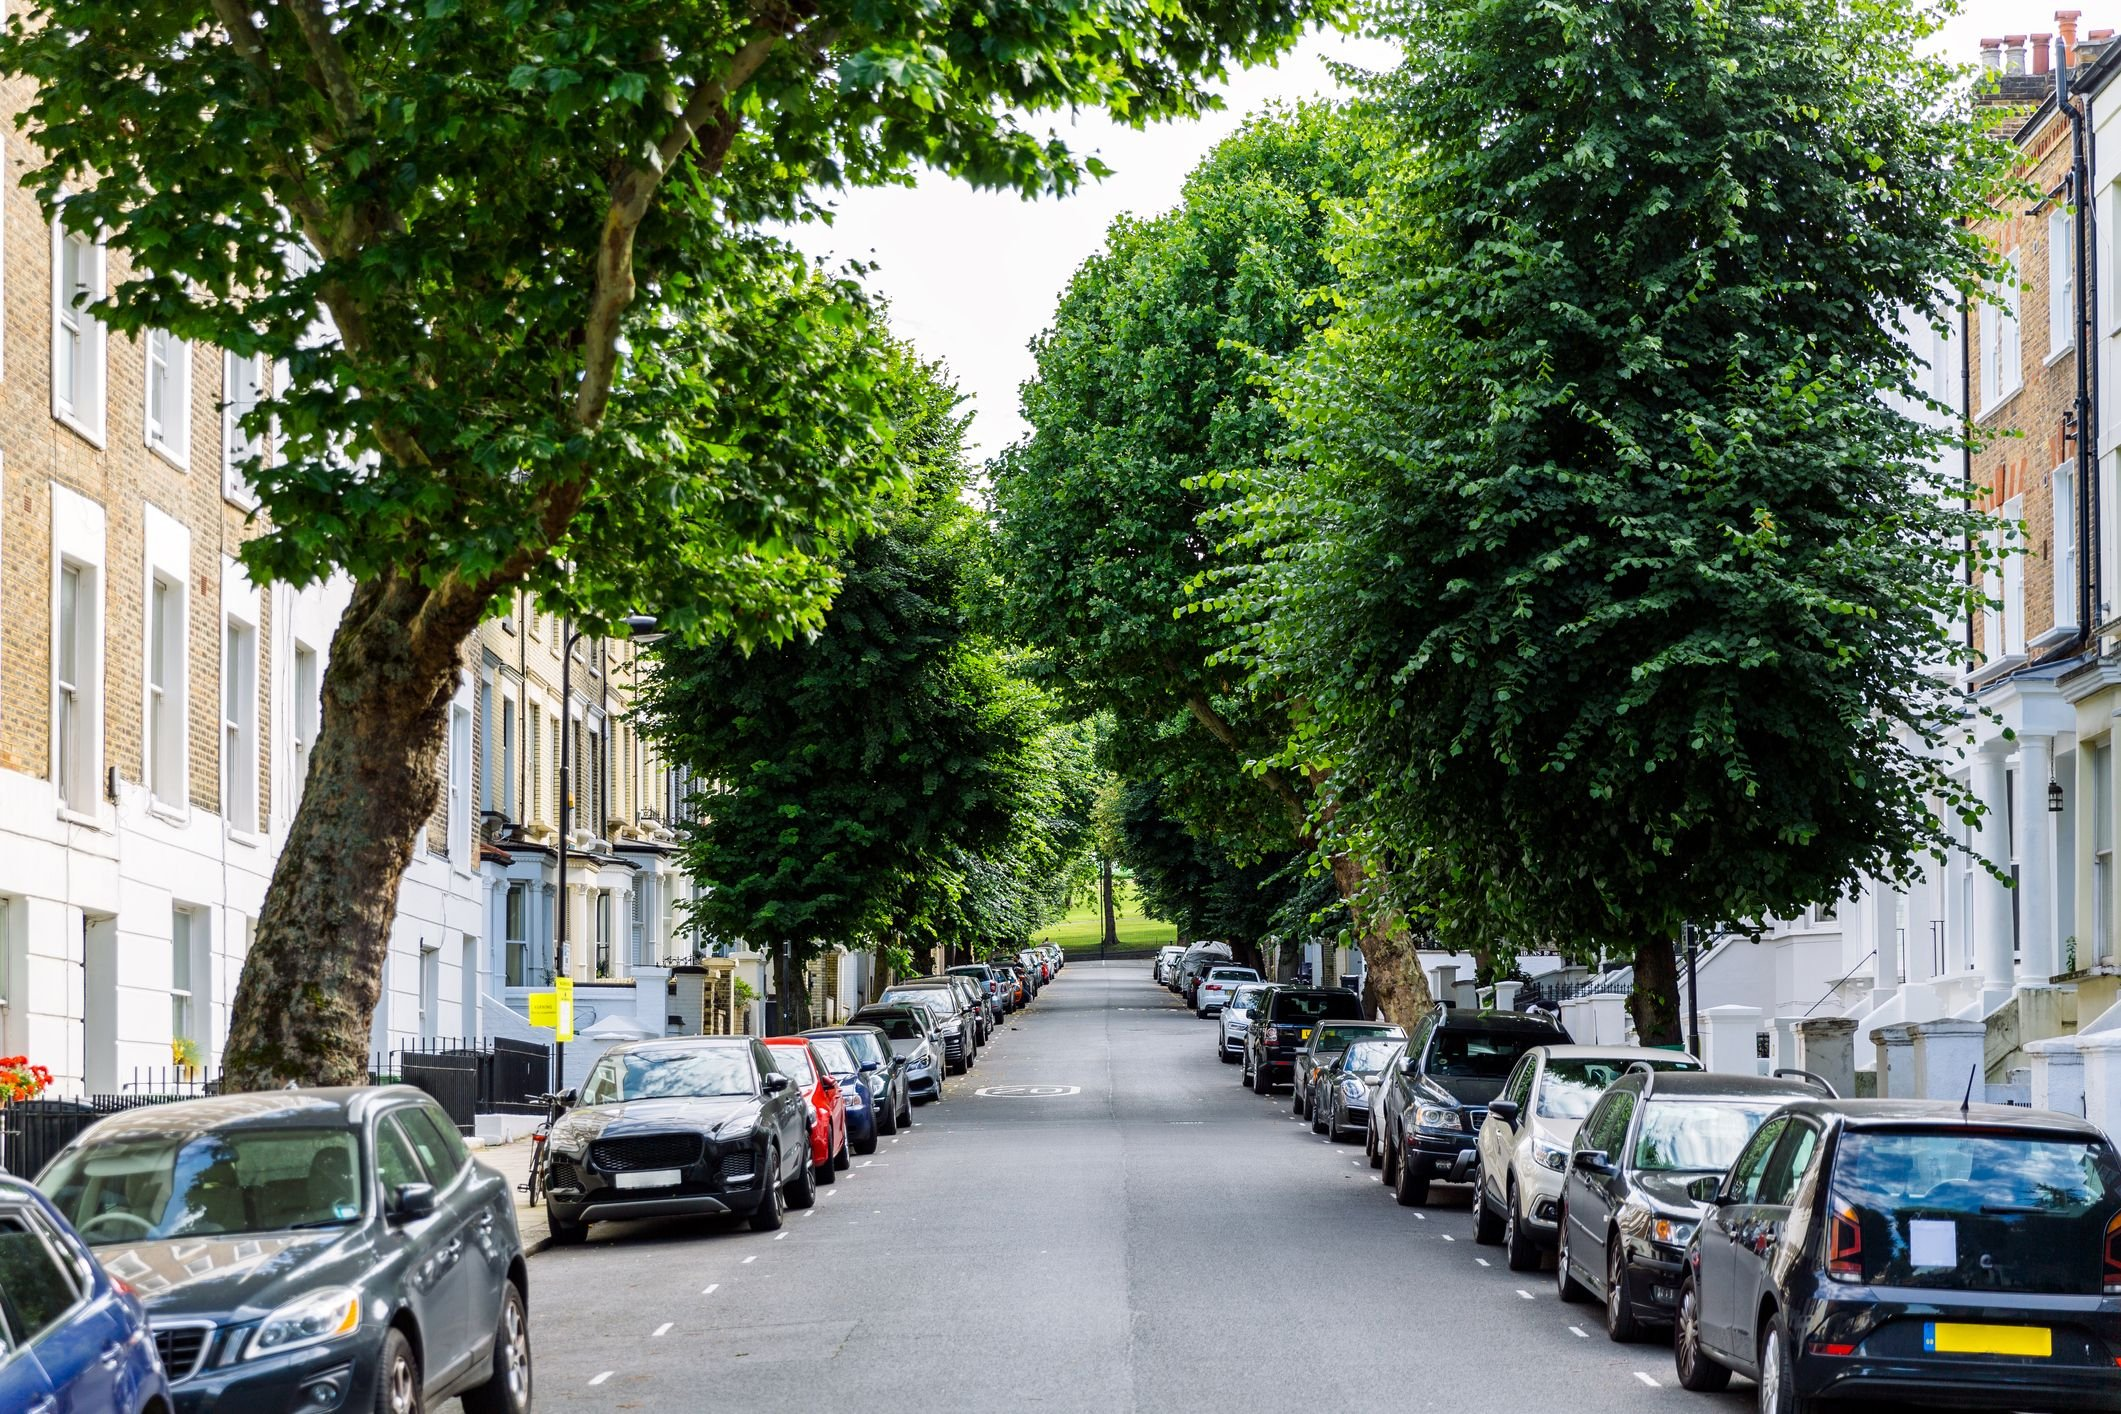 Several cars parked along a street. | Source: Shutterstock